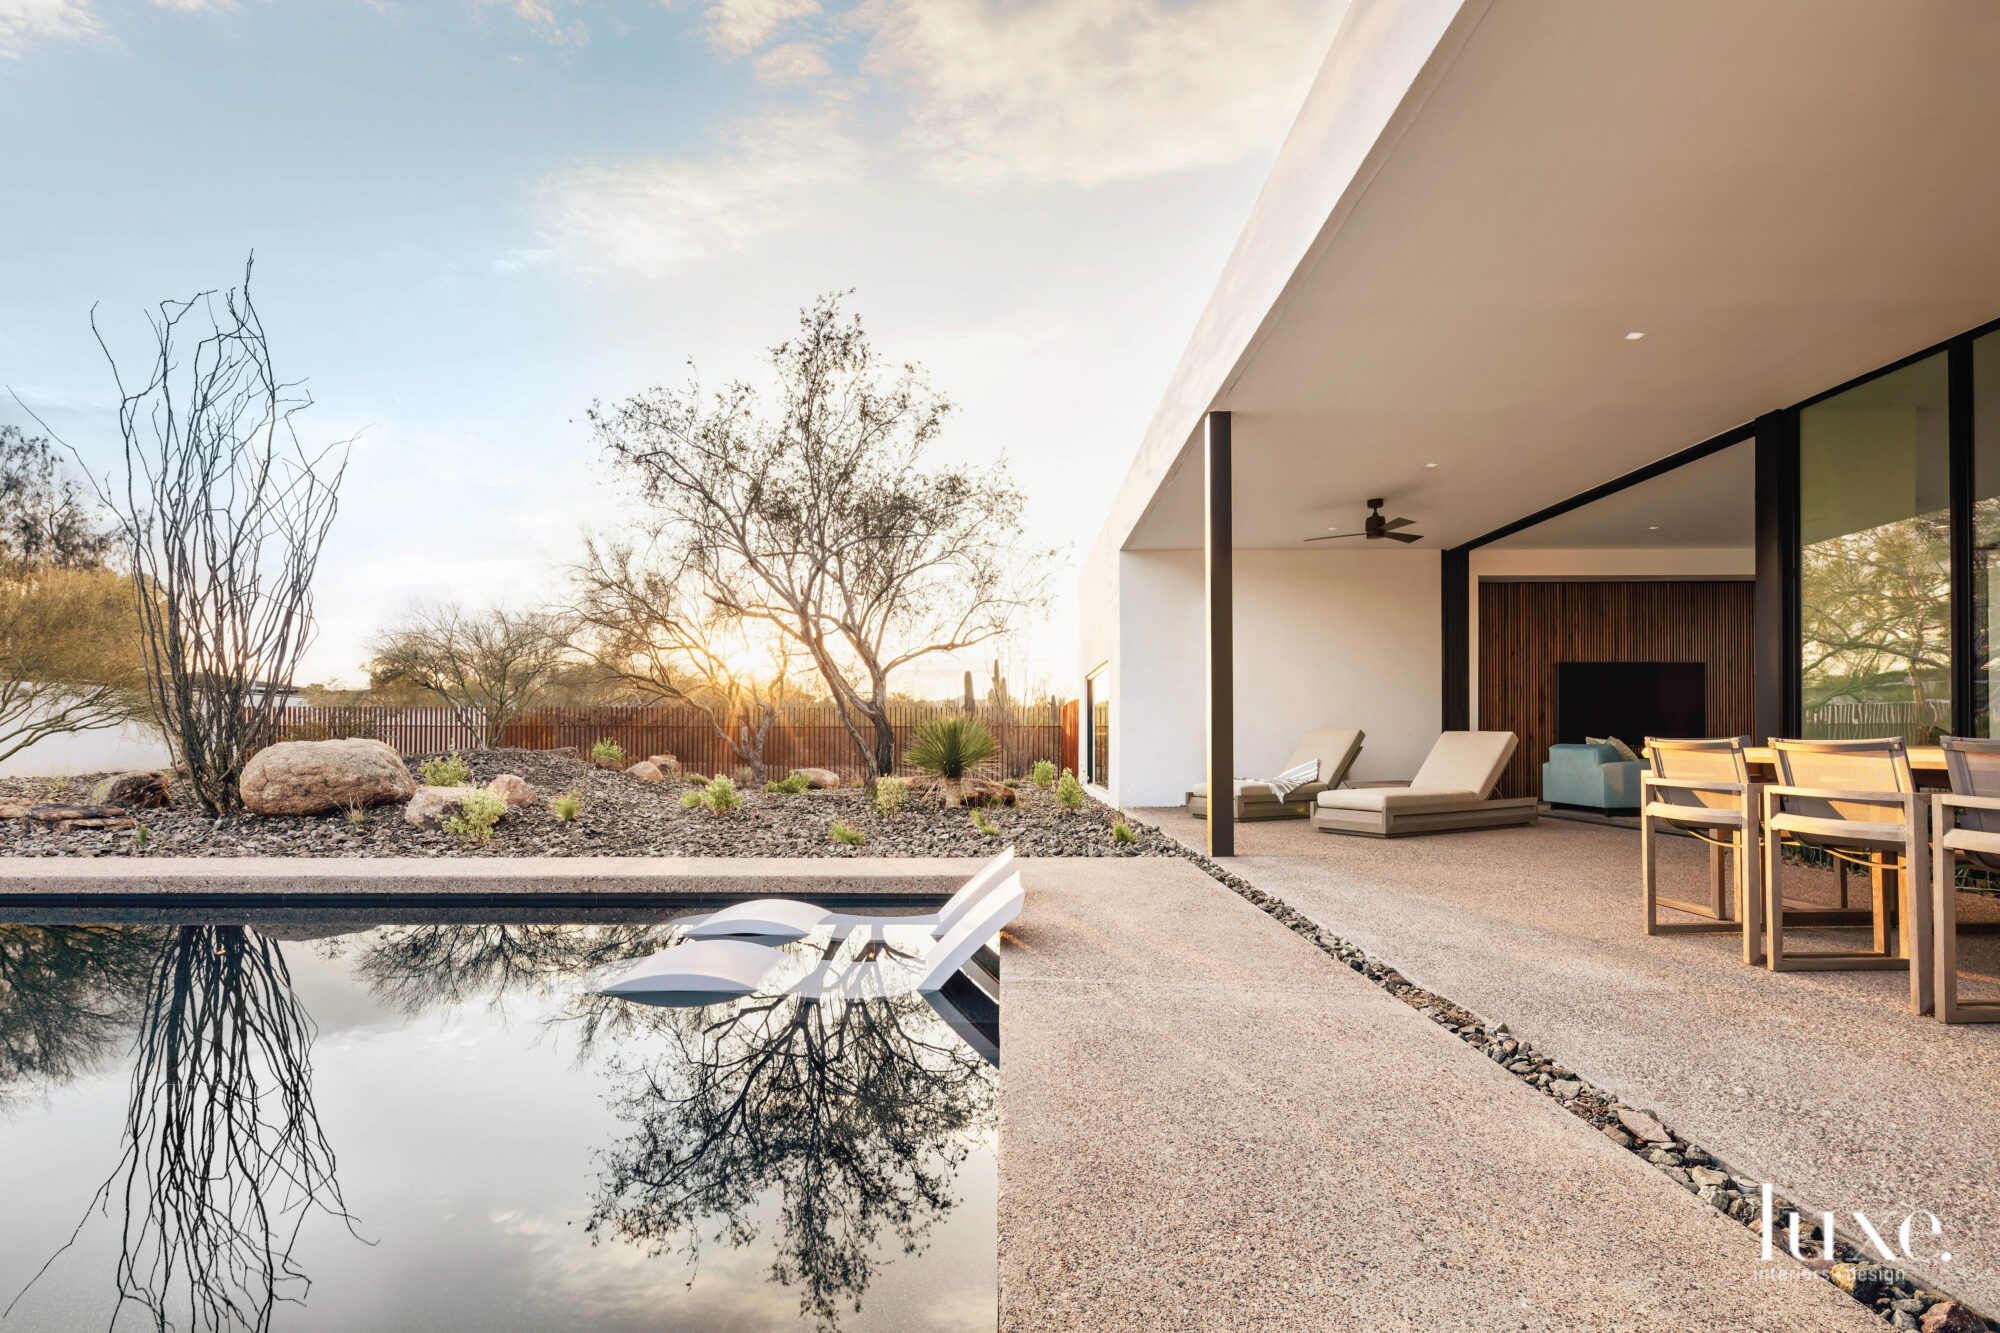 Landscape Takes The Lead In This Arizona Desert Hideaway